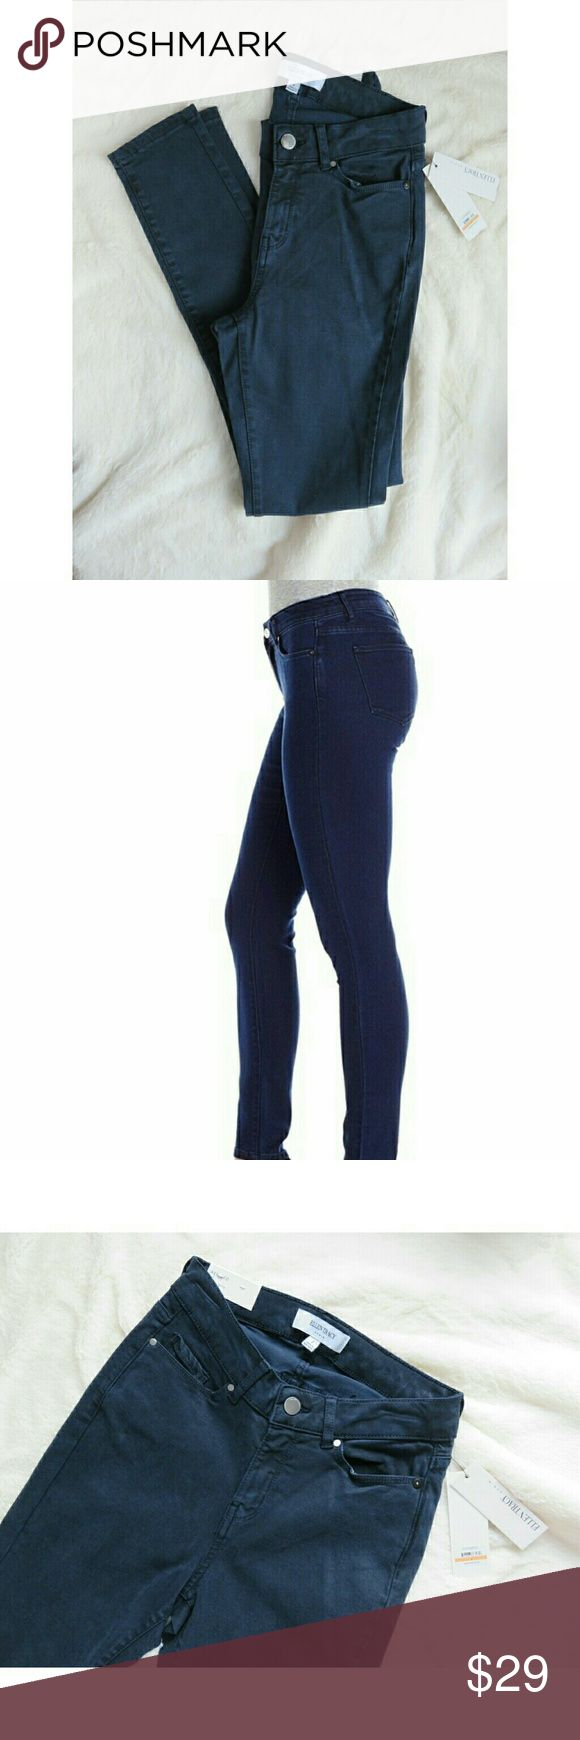 """NWT Ellen Tracy Stretch Skinny Ankle Jeans 2 Navy Meet """"Refined,"""" the perfect ankle skinny jeans in inky navy blue, new with tags from Ellen Tracy! Size Ladies 2, 64% Lyocell, 25% Cotton, 9% Polyester, 2% Elastane--the perfect stretch! """"Admiral Blue,"""" made in Bangladesh. Measures lying flat 12"""" across waist, mid-rise of 9.25"""", and ankle jean 28.25"""" inseam. New with tags consignment item, ships fast! Thank you, Jen #1229  *Stock photo for fit reference only* Ellen Tracy Jeans Skinny"""